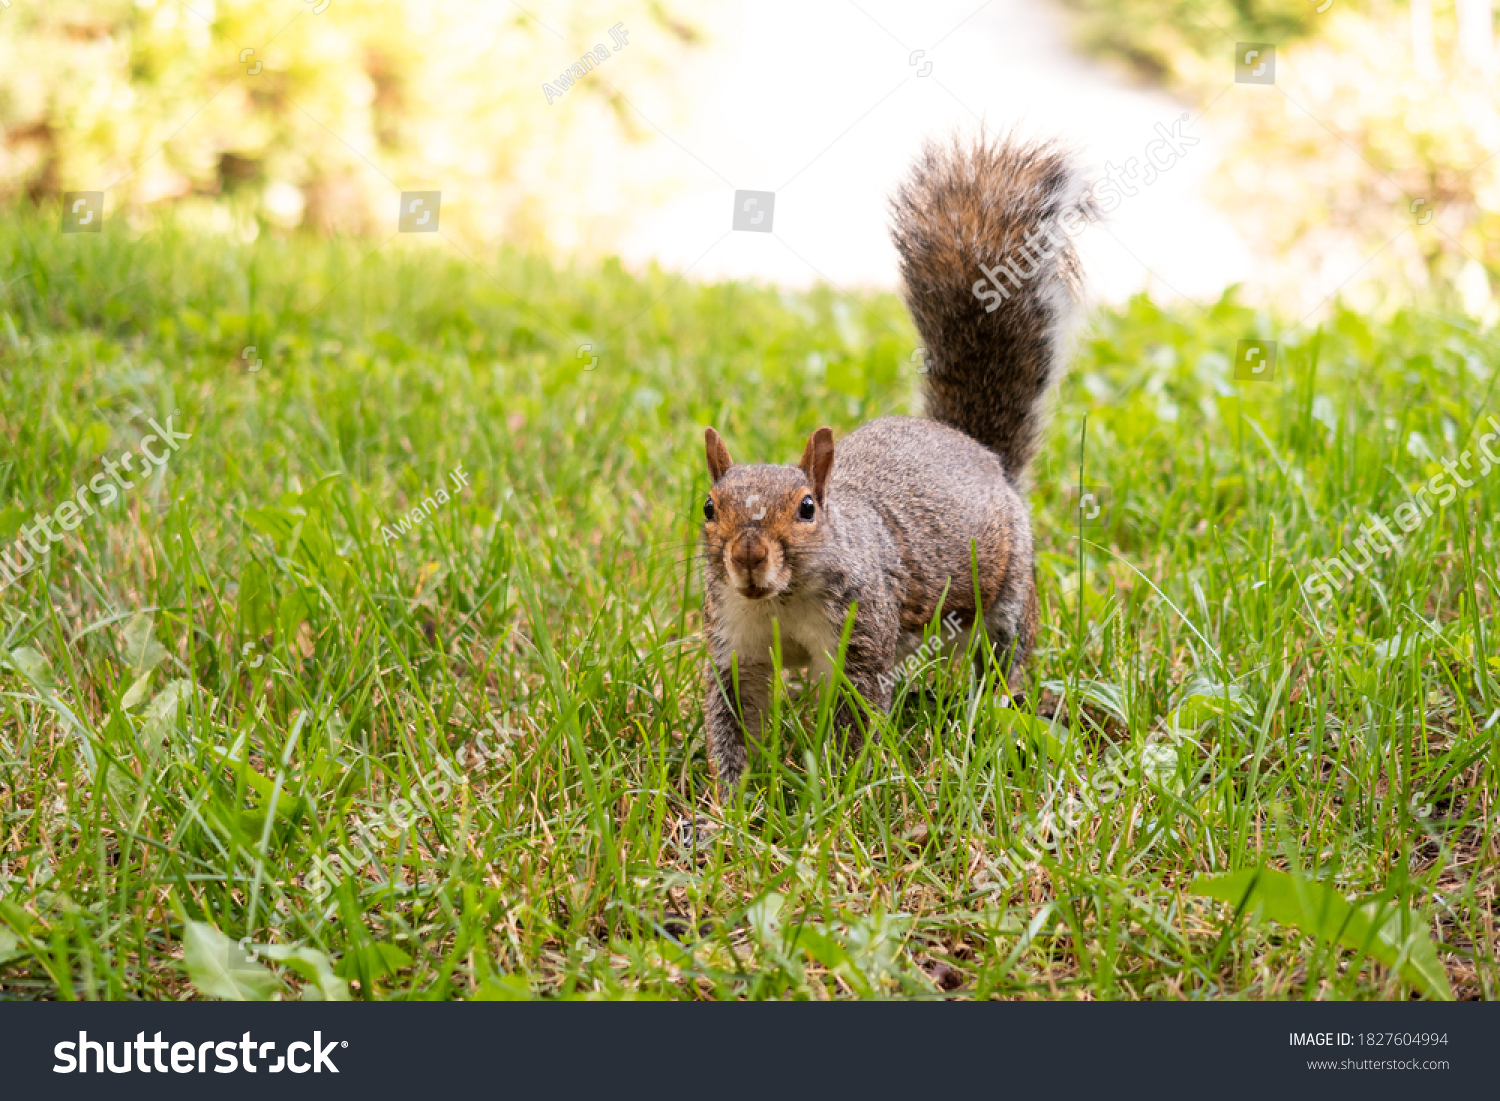 stock-photo-view-of-an-adorable-eastern-